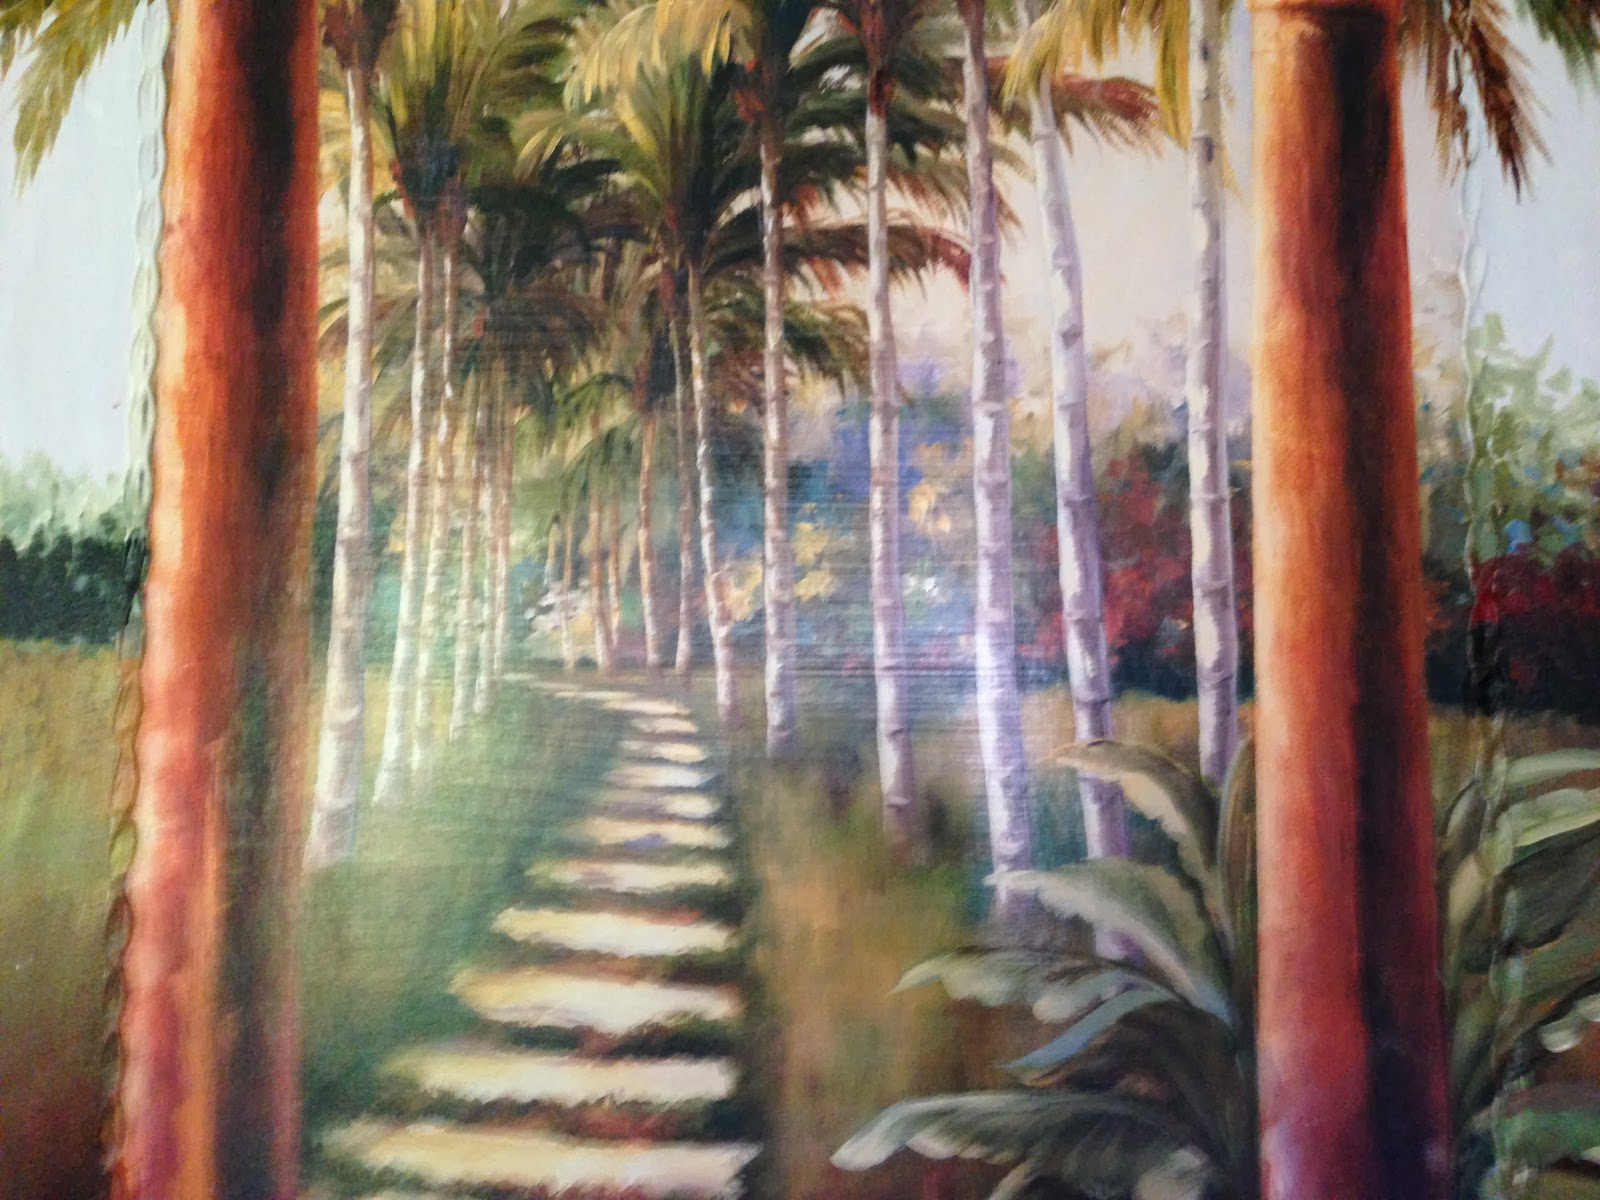 pathway through peace of mind, tall palm trees, muted light